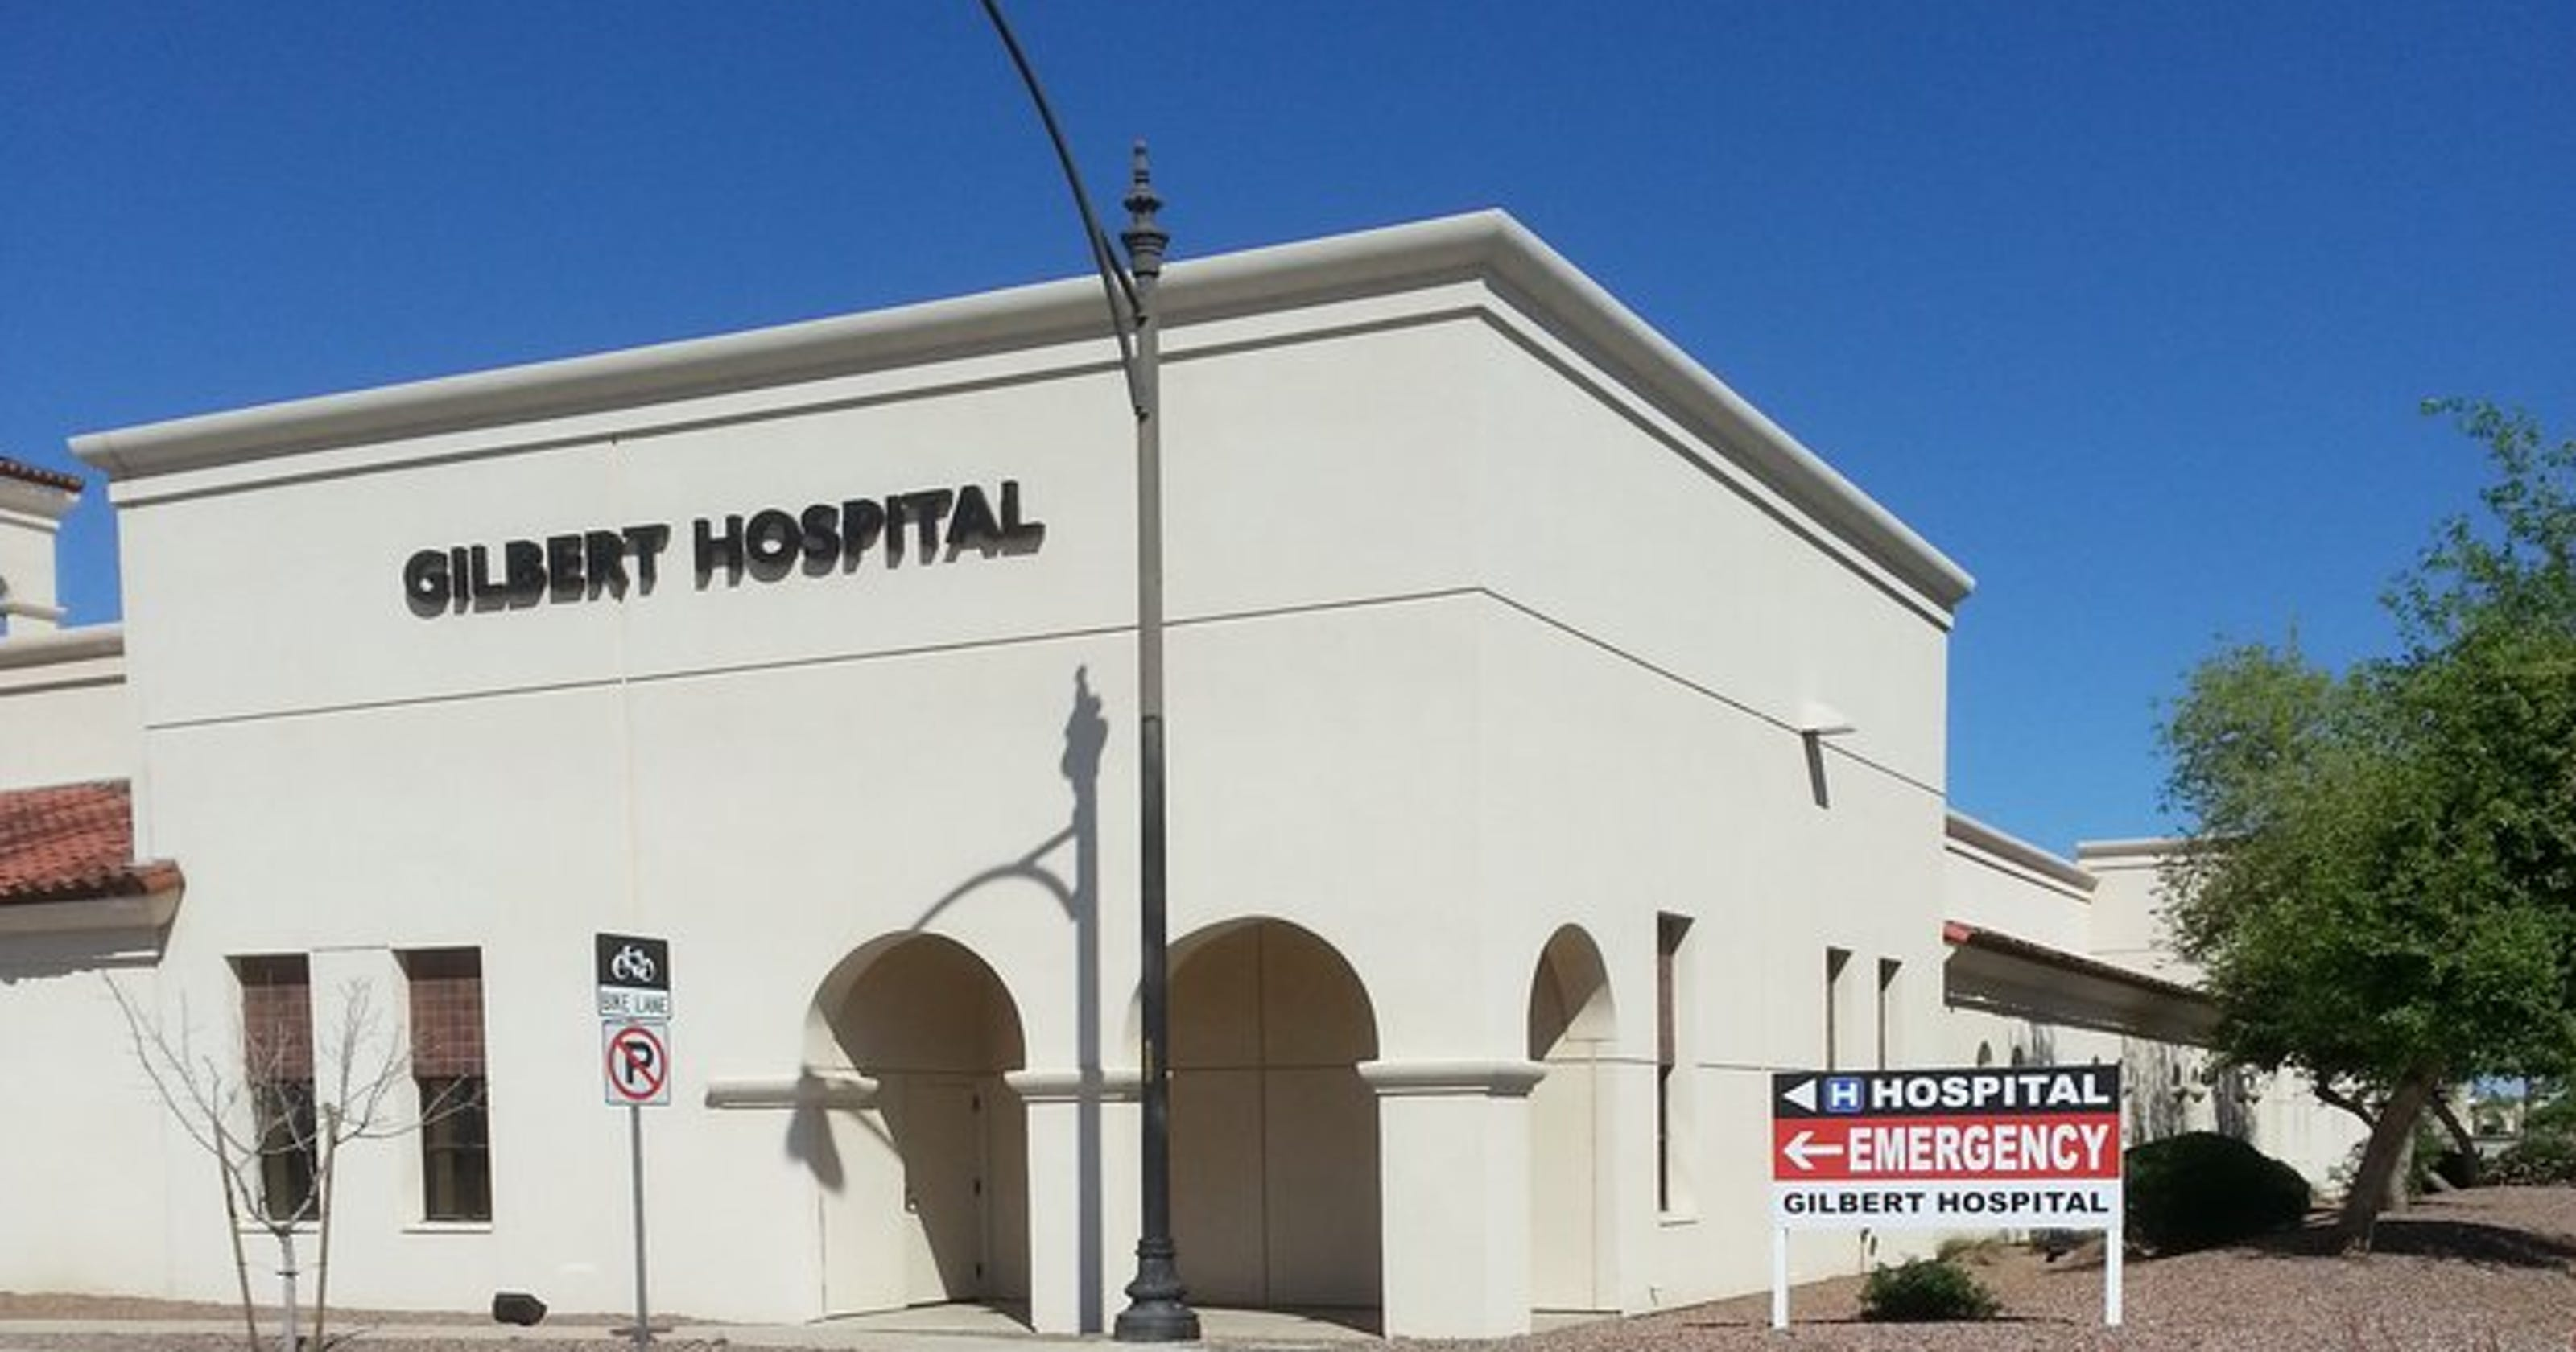 Bankruptcy closes 2 Arizona hospitals, in Gilbert and Florence